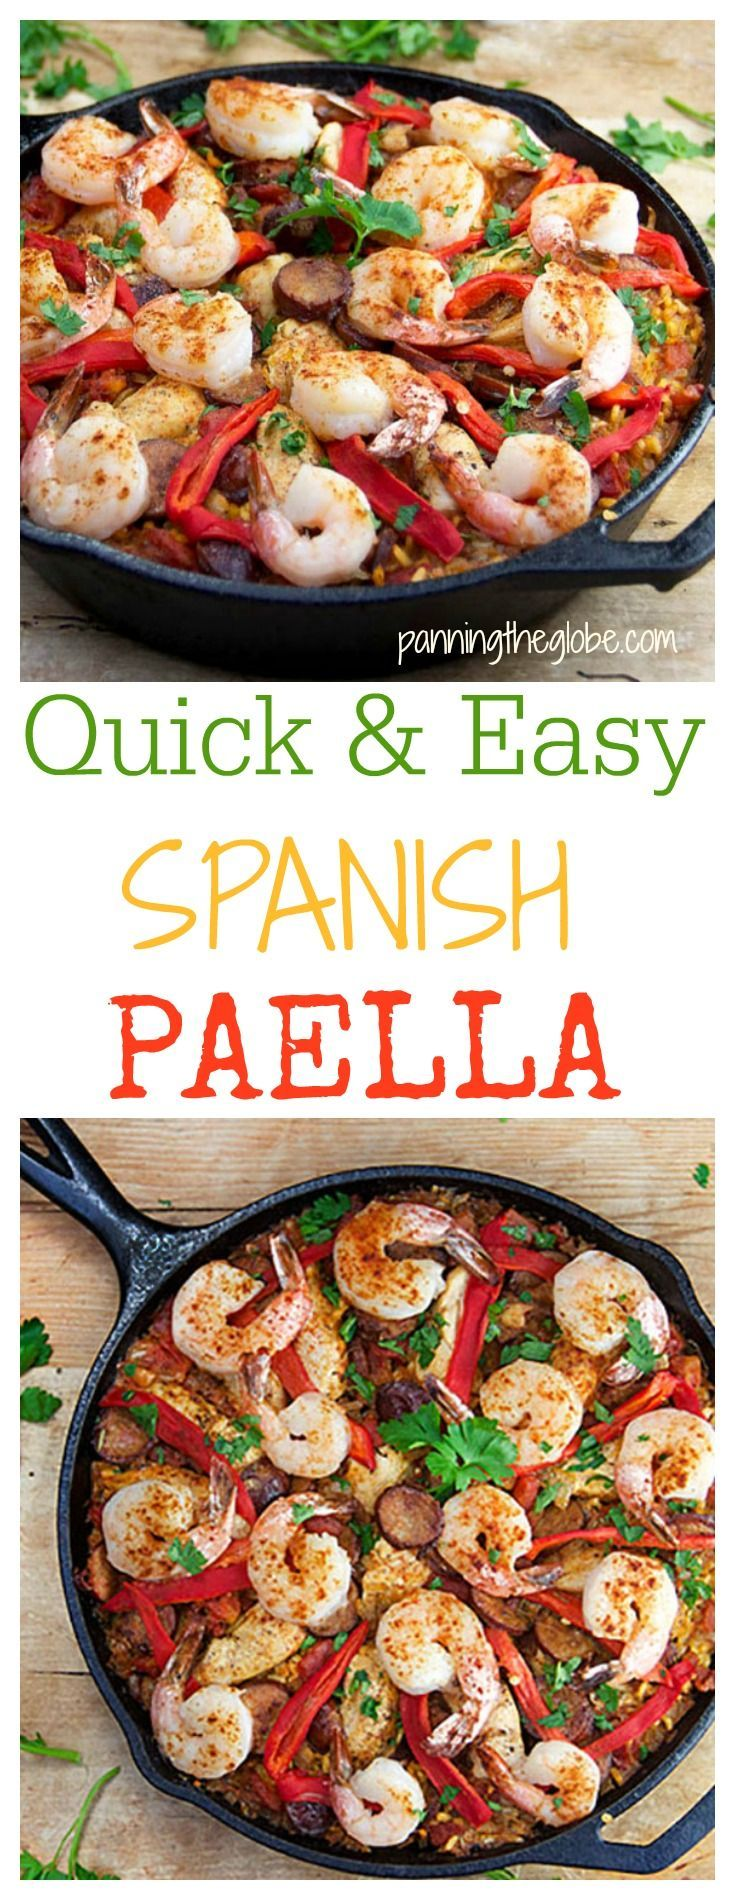 Easy Spanish Paella: You don't  need lots of time or a special pan to make Paella. In Spain paella is a popular weeknight dinner. This easy paella recipe takes 15 minutes of prep - 1 hour total - and you make it in a skillet.